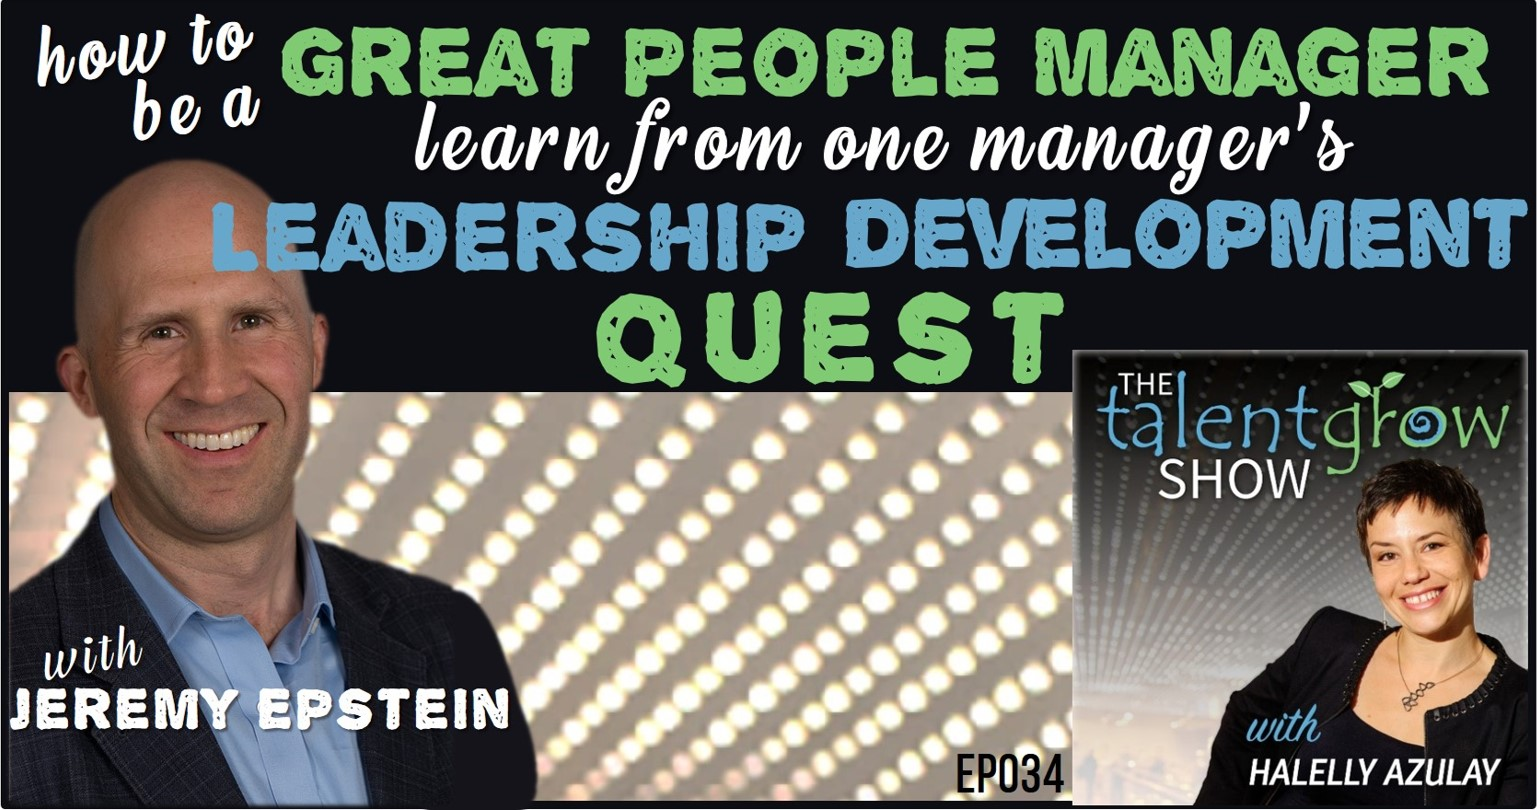 TalentGrow Show ep034 How to be a great people manager with Jeremy Epstein learn from one manager's leadership development quest